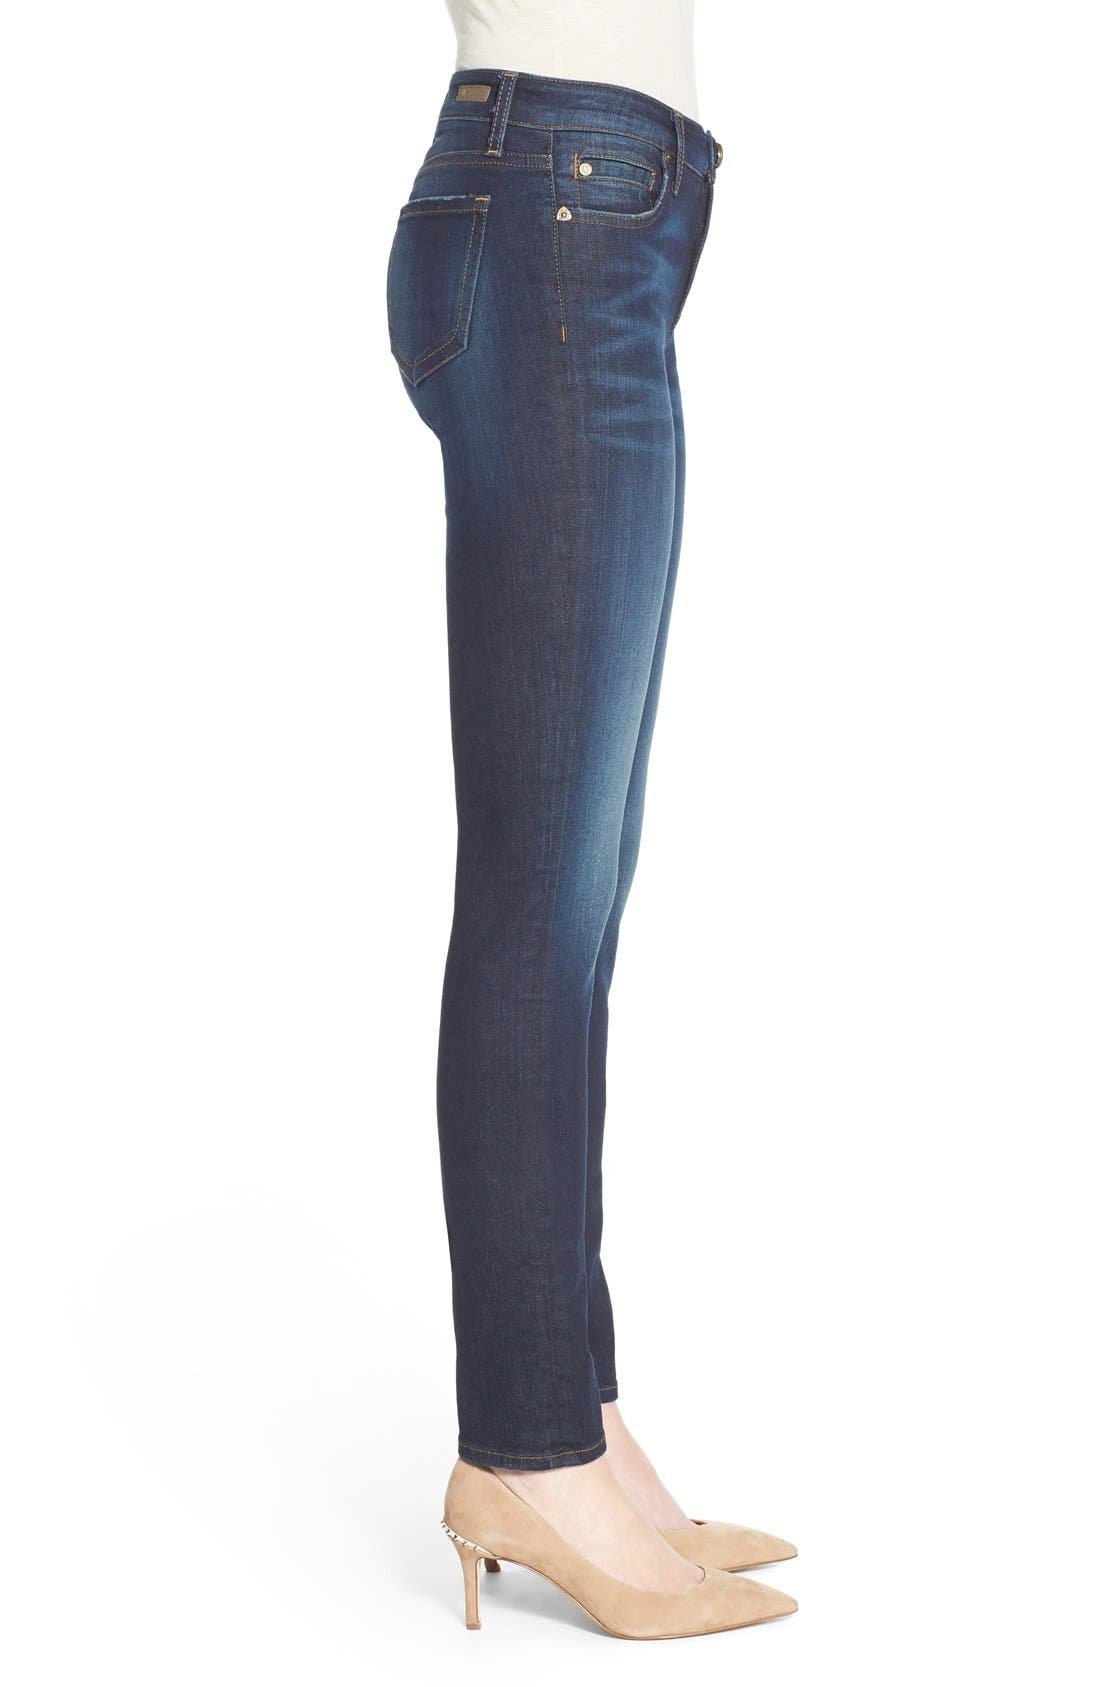 Alternate Image 4  - KUT from the Kloth 'Diana' Stretch Skinny Jeans (Blinding) (Regular & Petite)